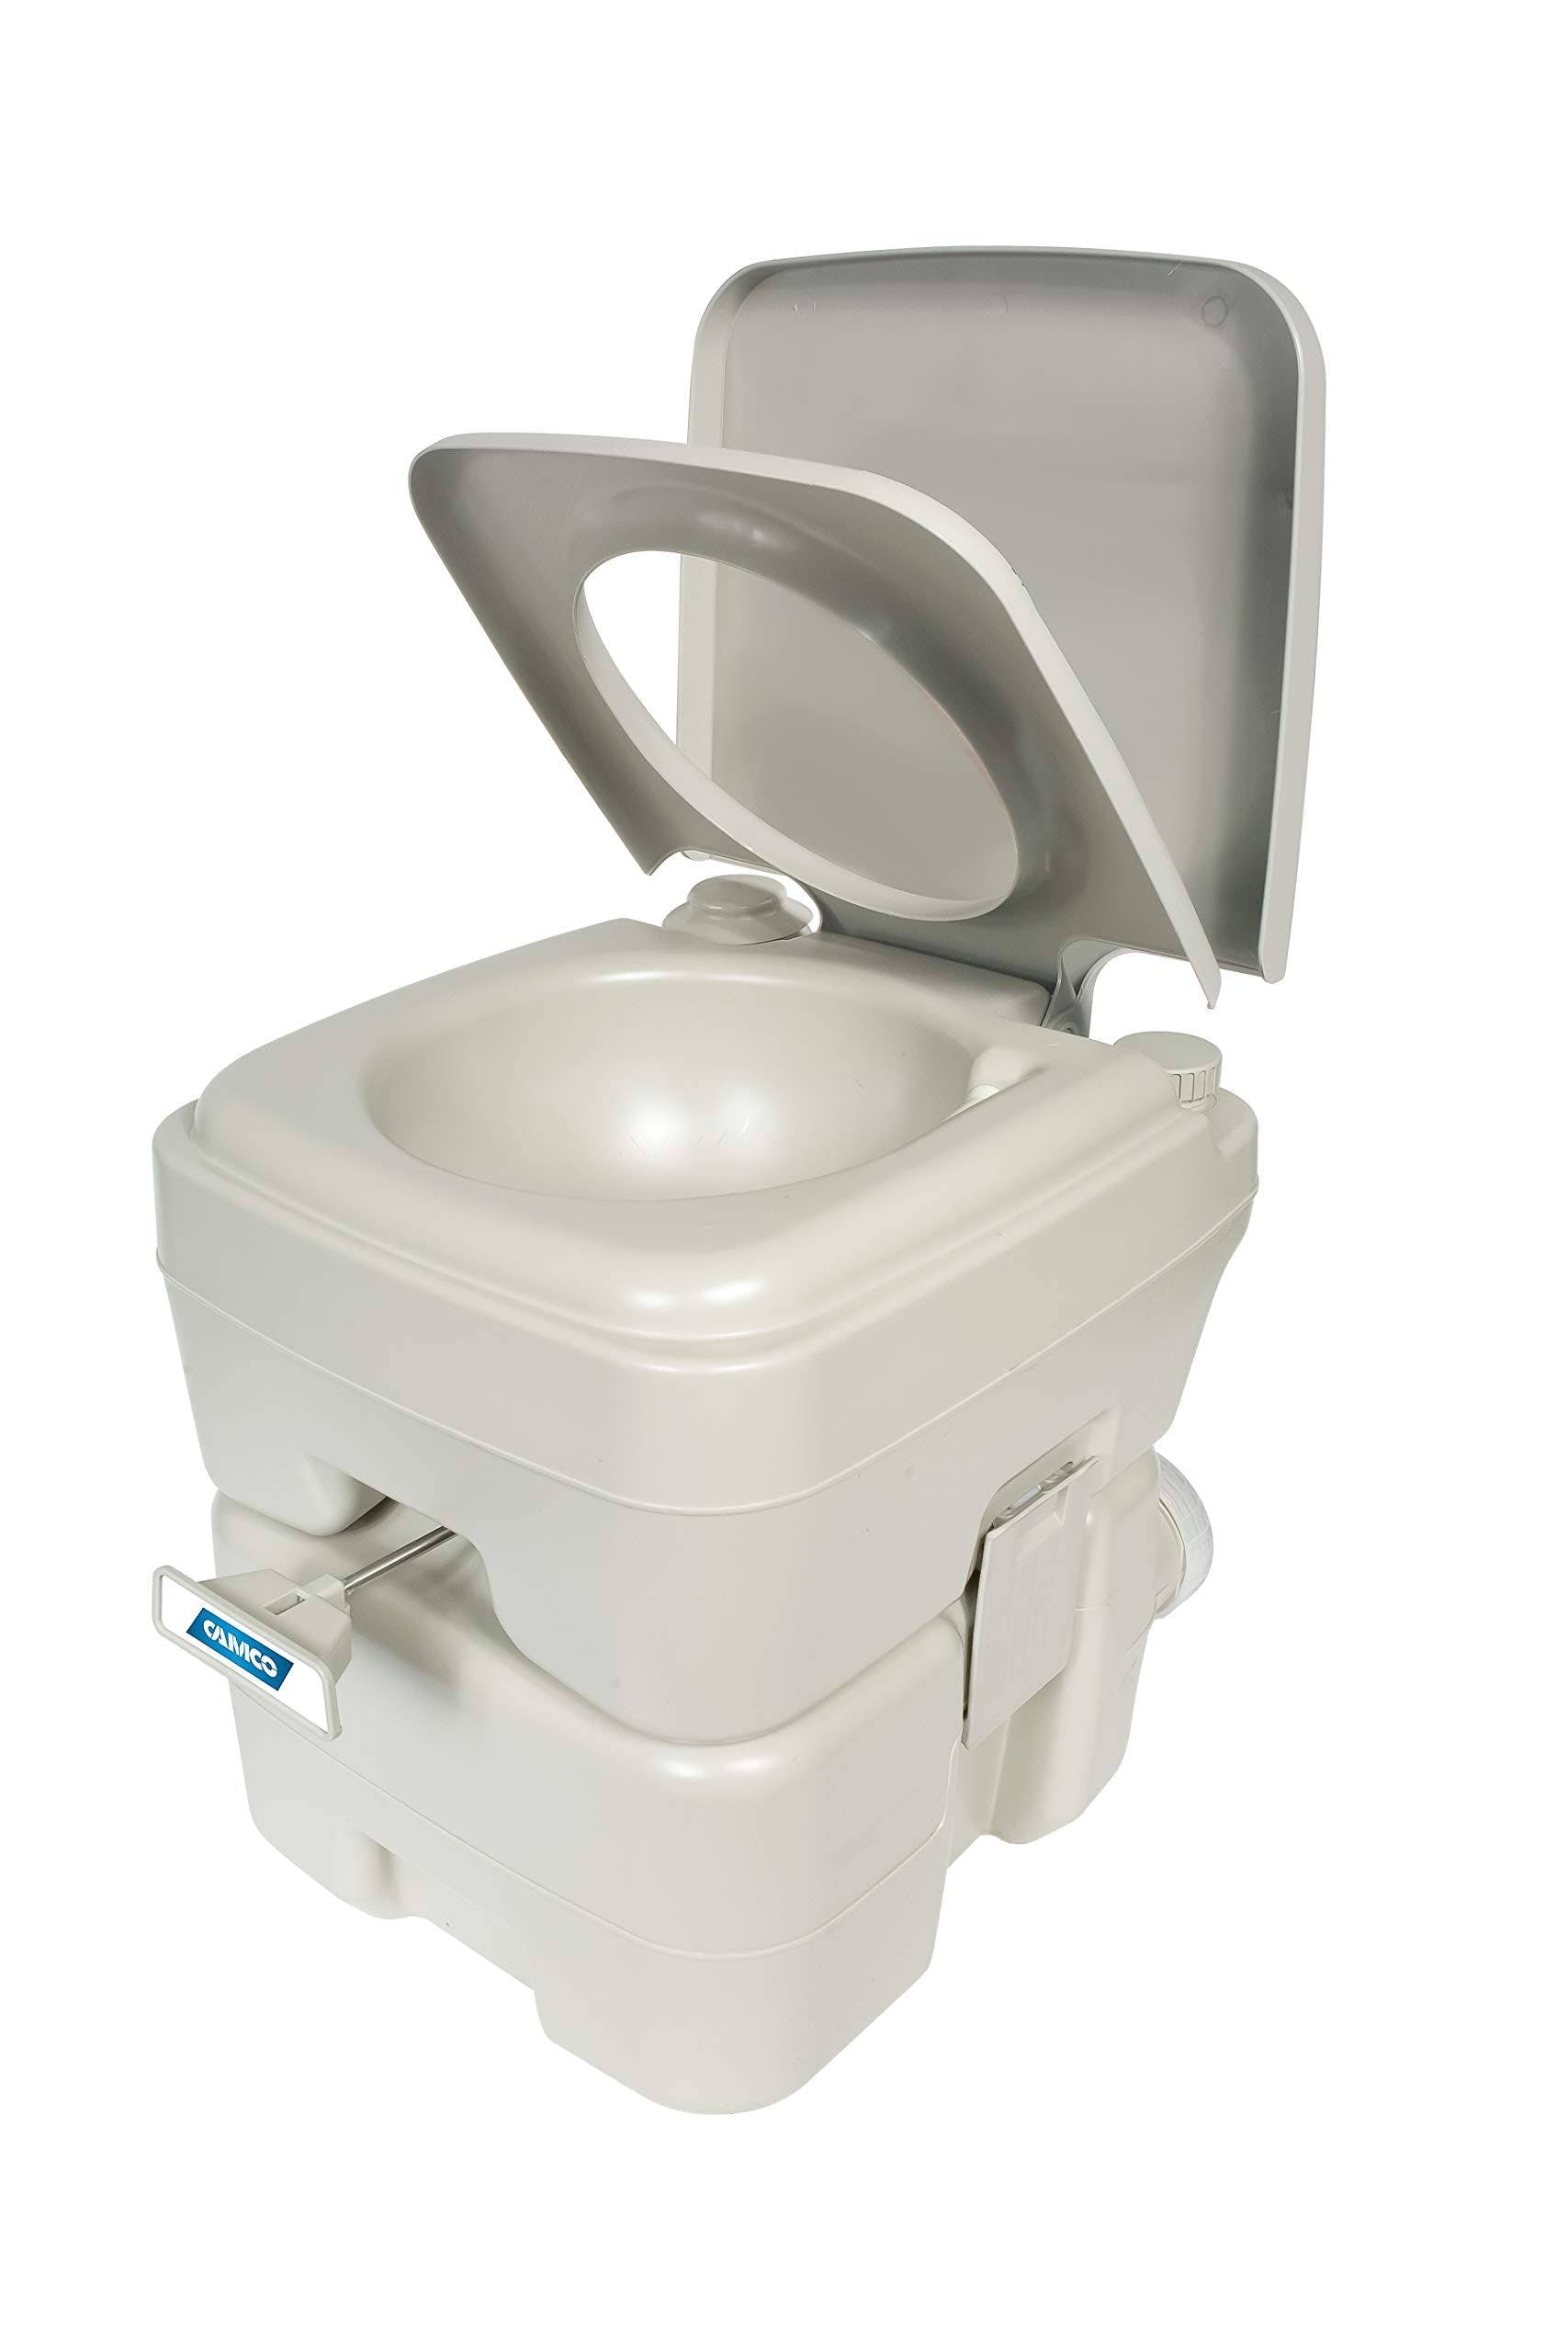 Camco - Portable Toilet 5.3 Gal